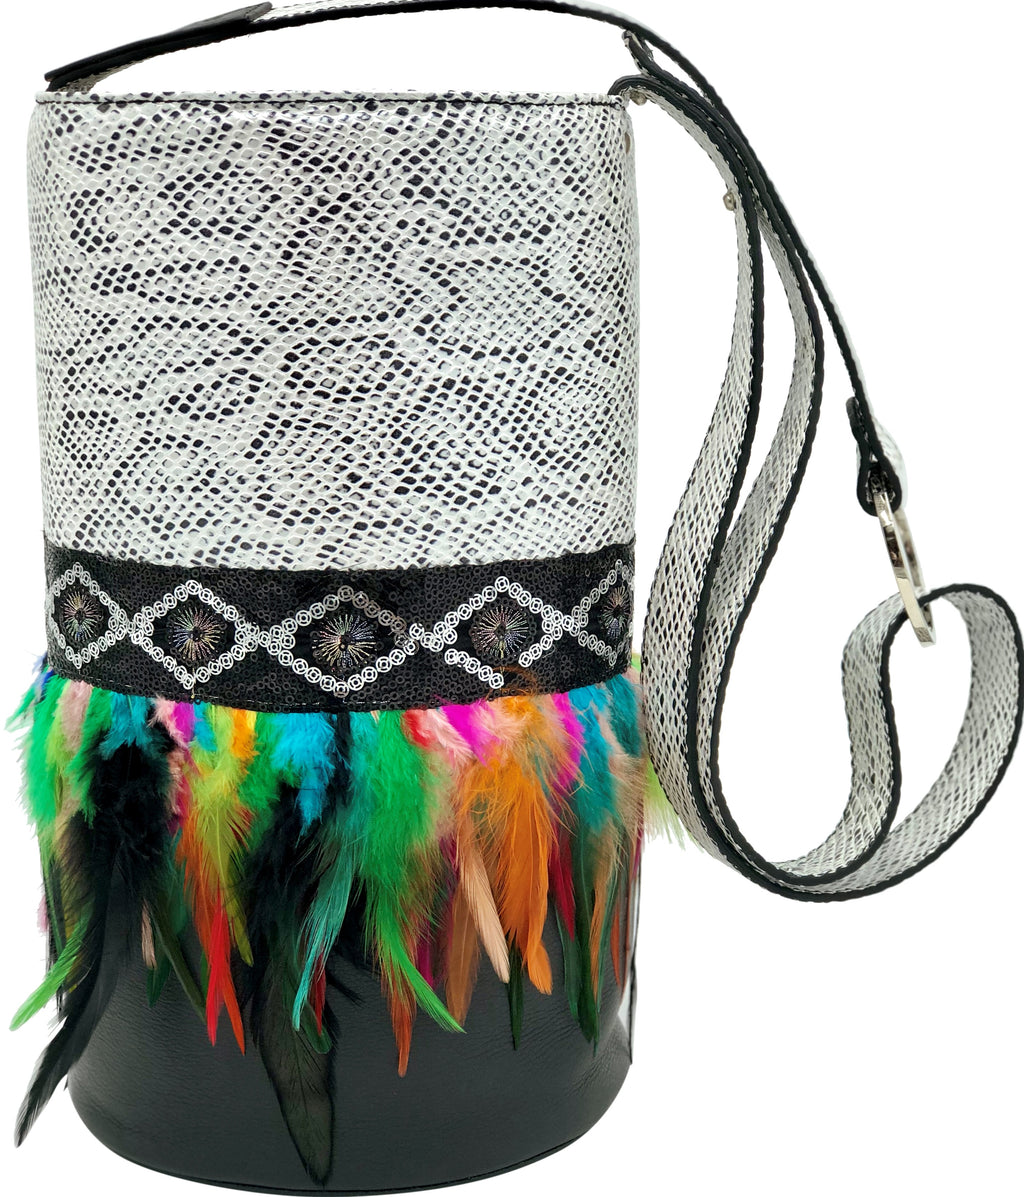 White & Black embossed leather bag with feathers.